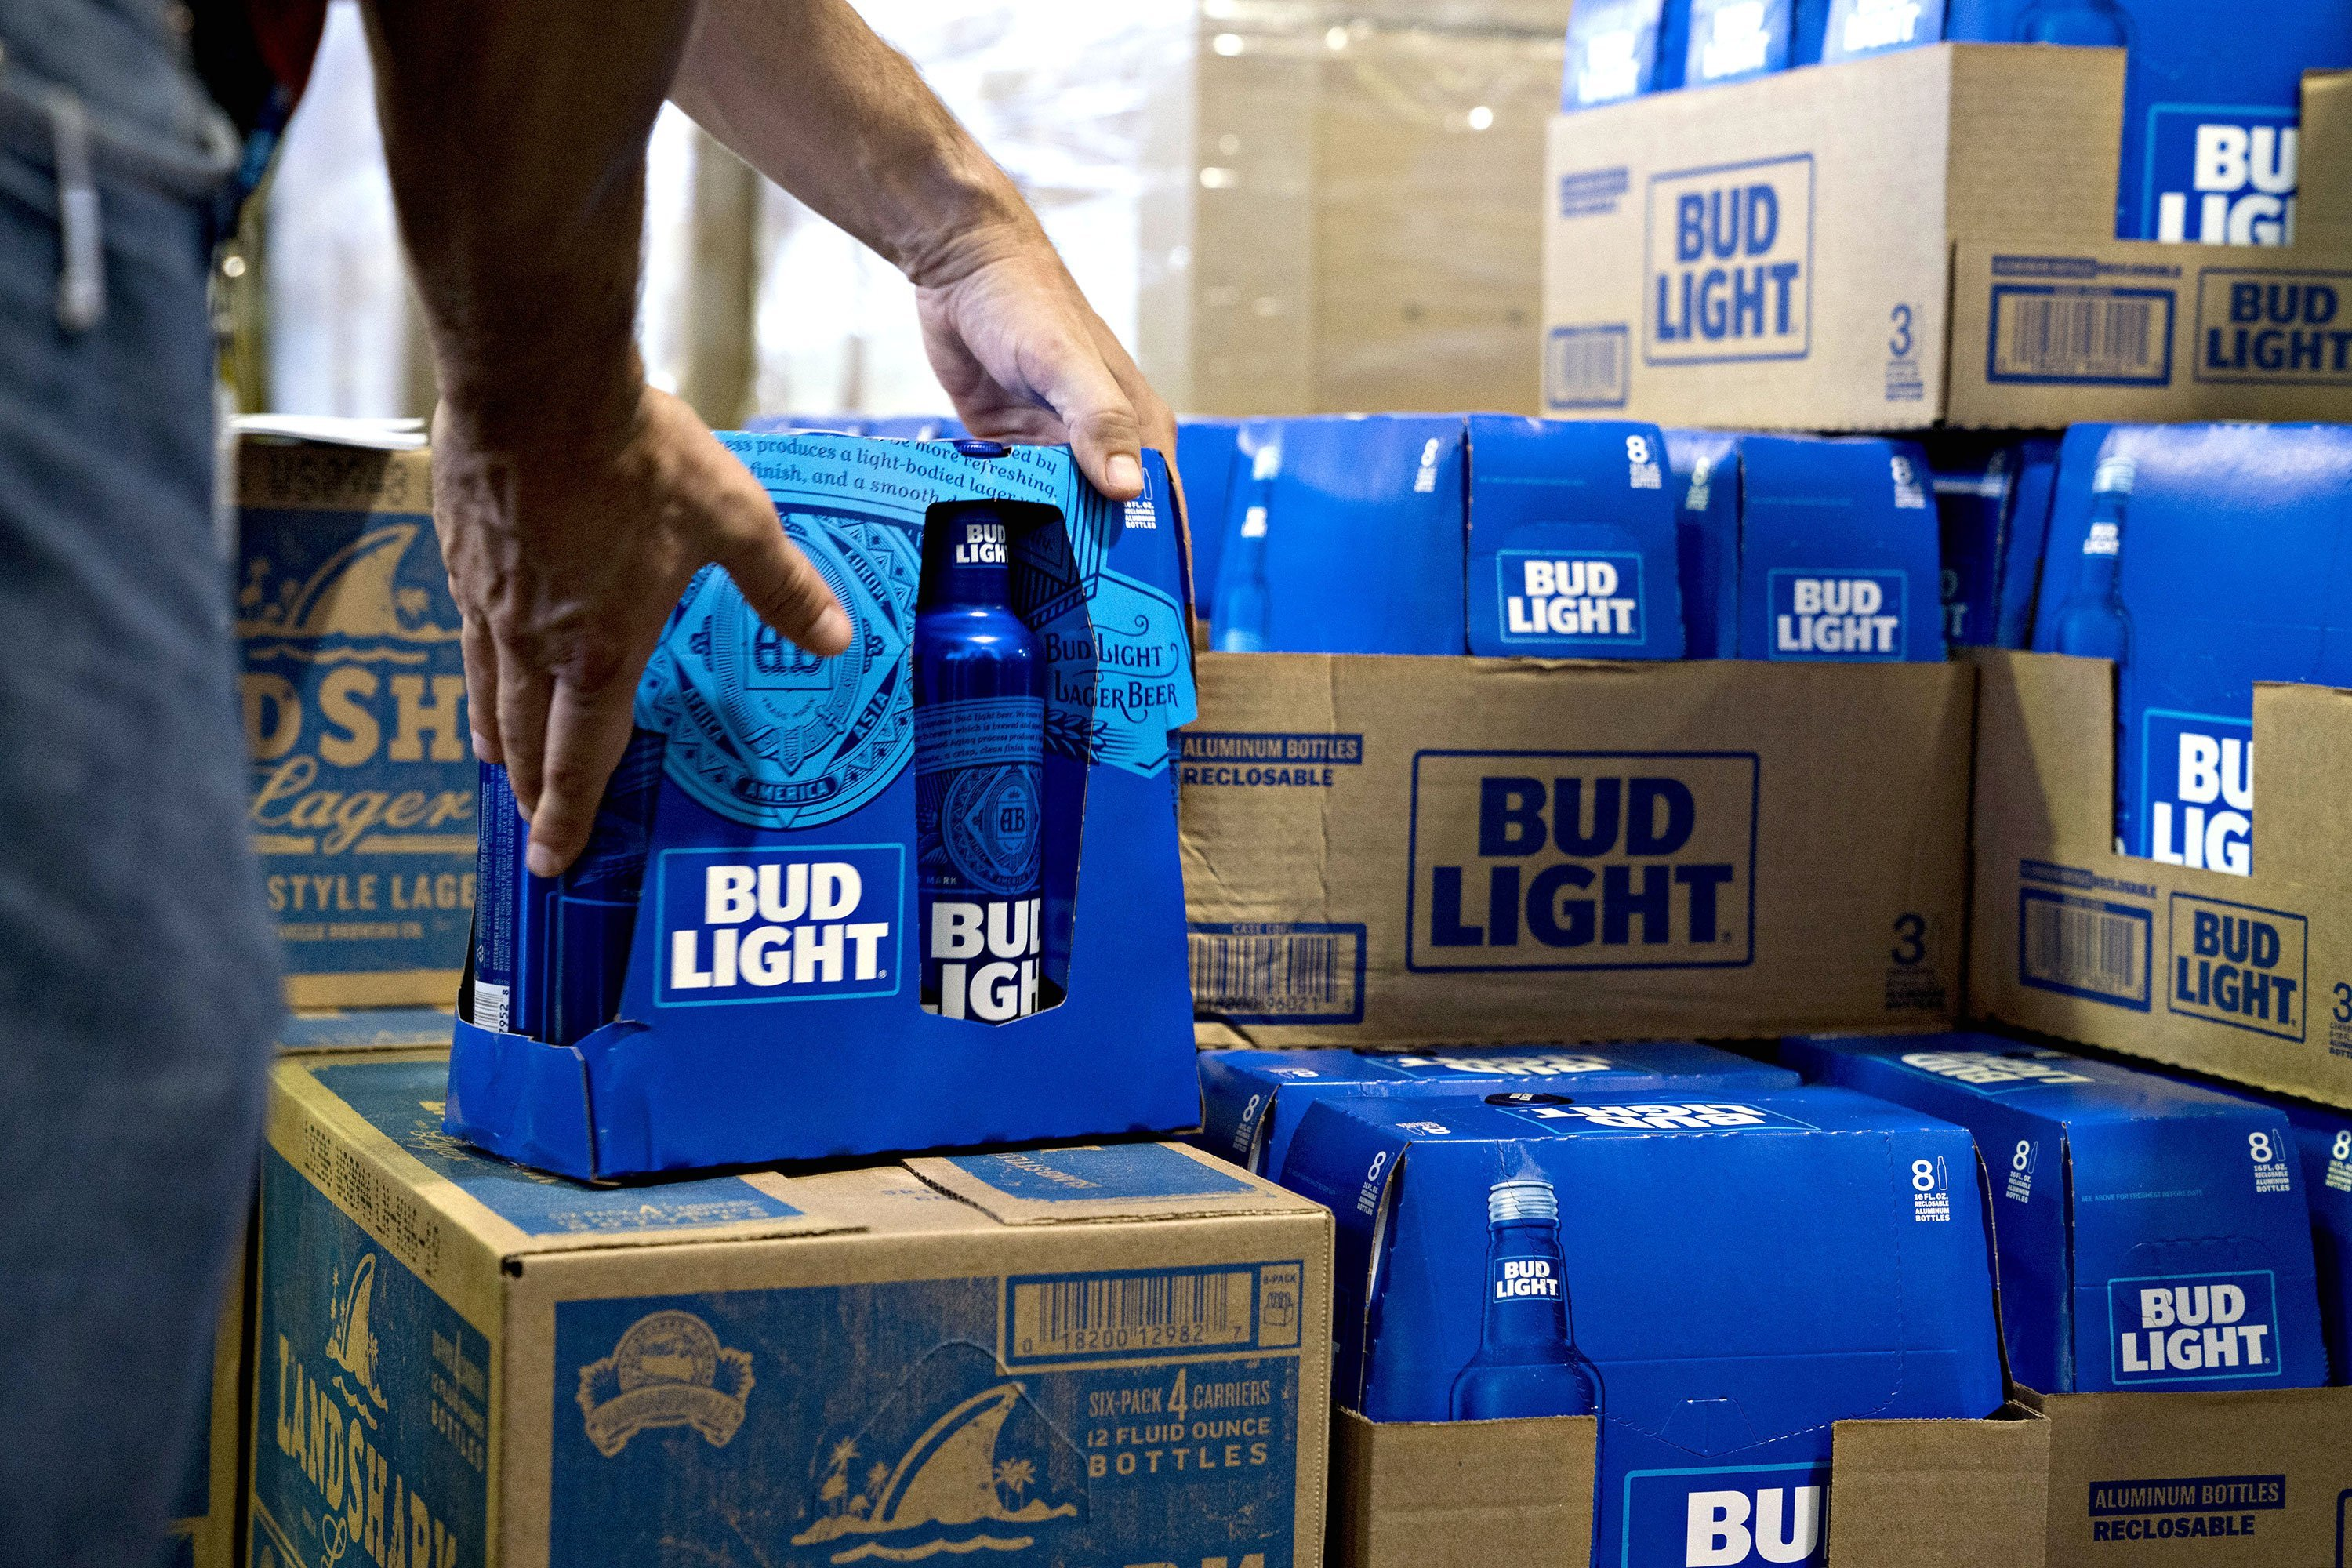 AB InBev accuses rival of obtaining the secret recipe for Bud Light